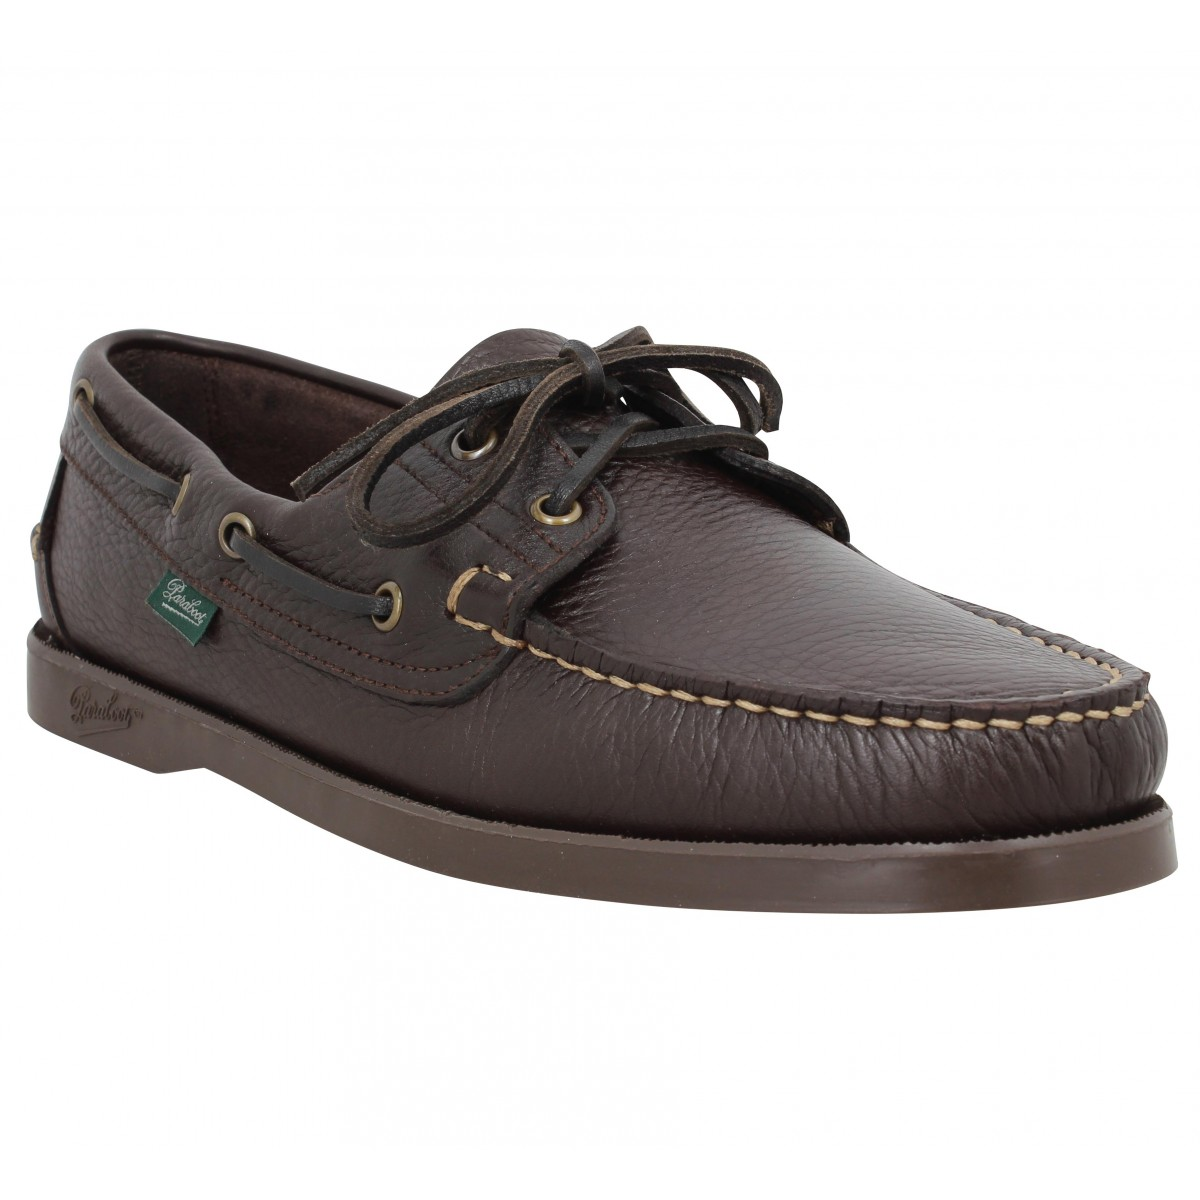 f4b102ec2034af Paraboot barth cuir foulonne homme marron homme | Fanny chaussures